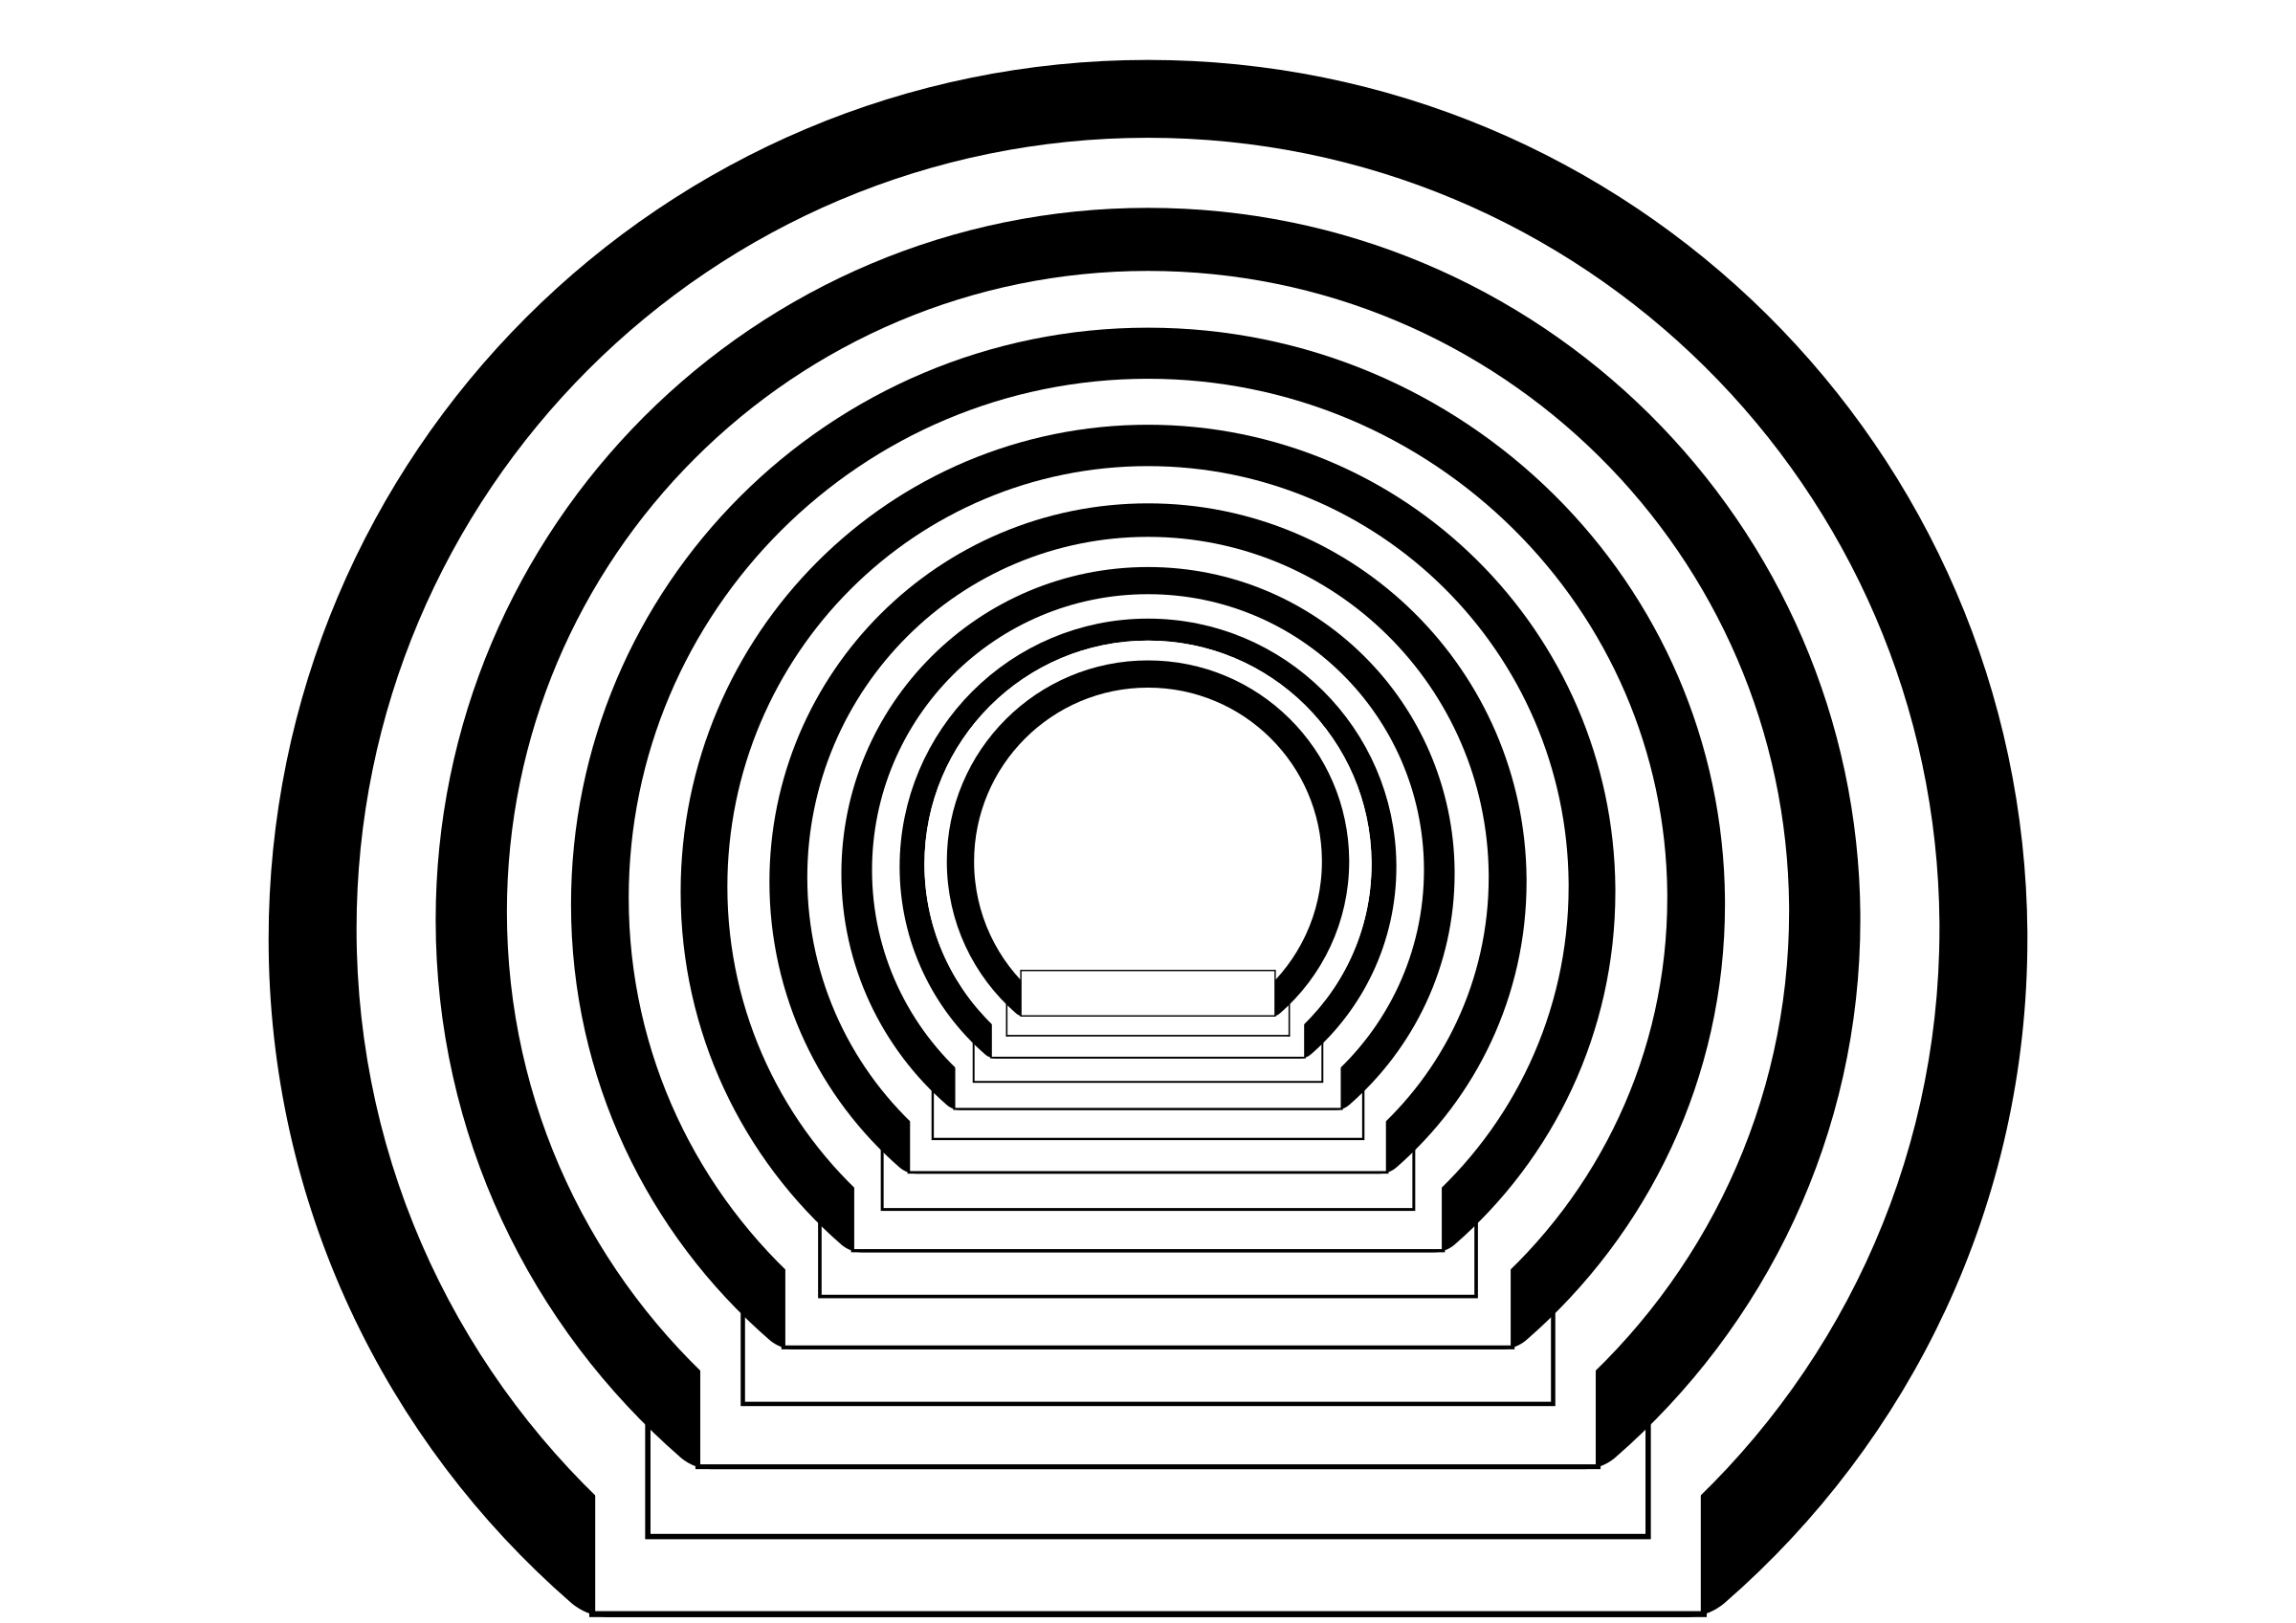 TUNNEL by dordy